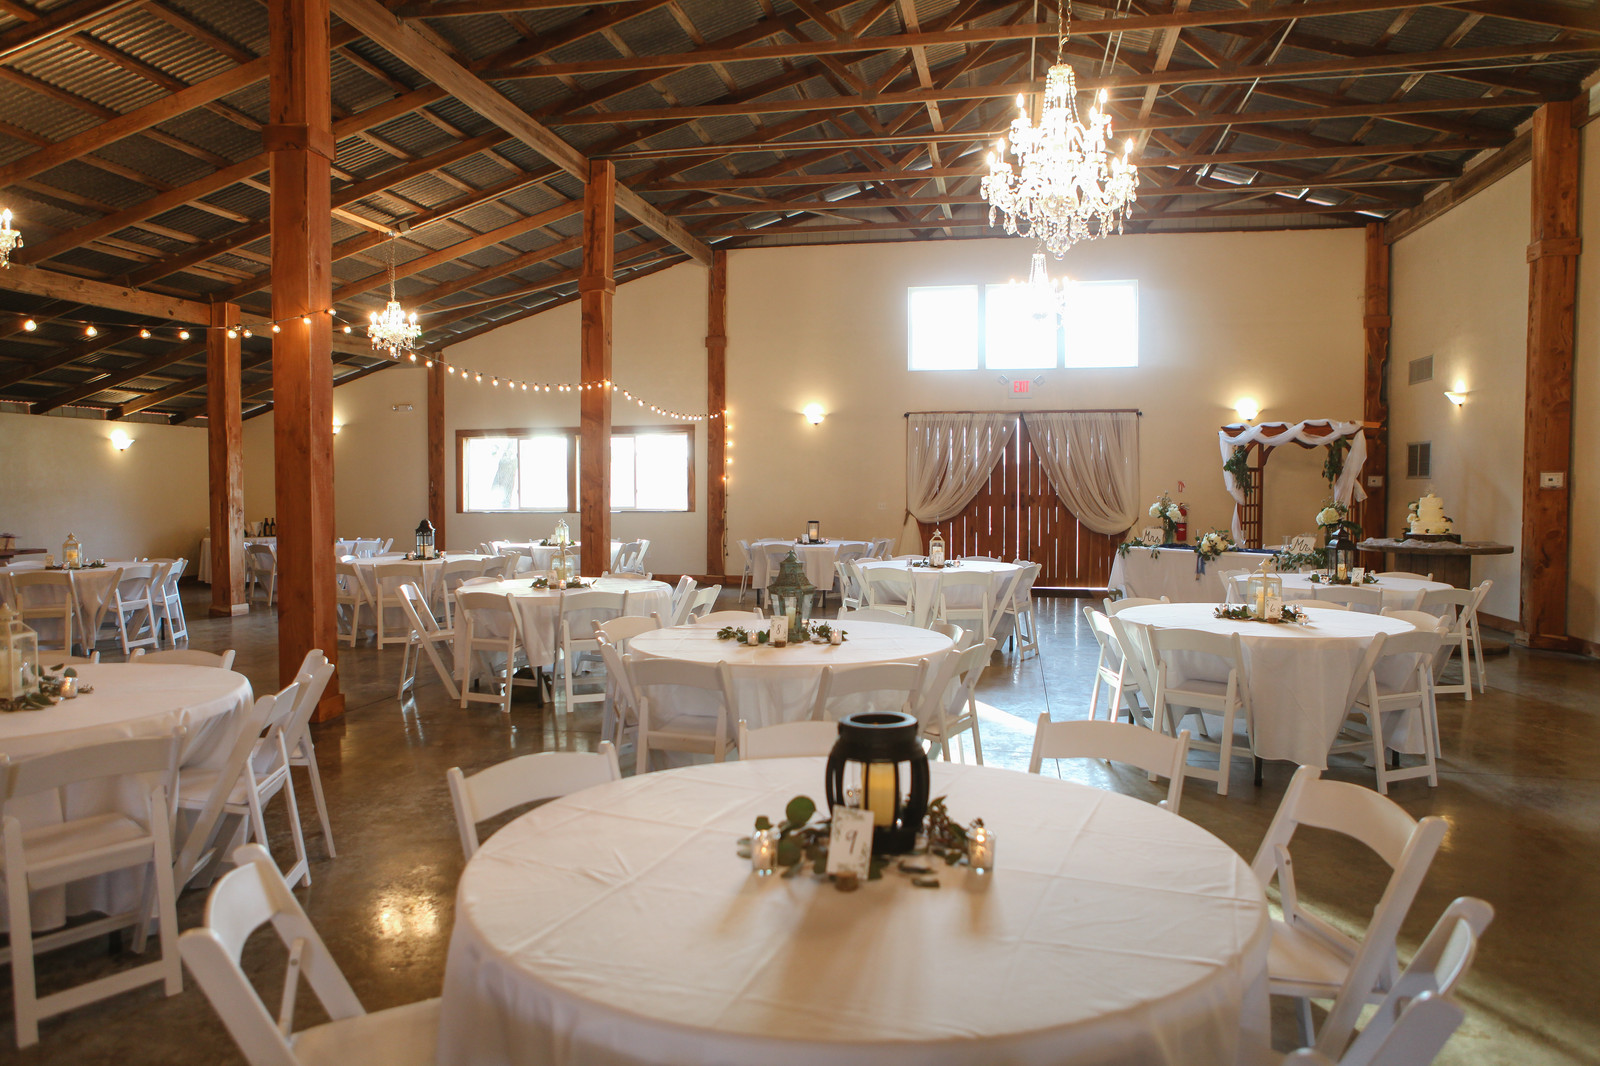 25-60inch round tables and 200 white garden chairs, plus 120 ...